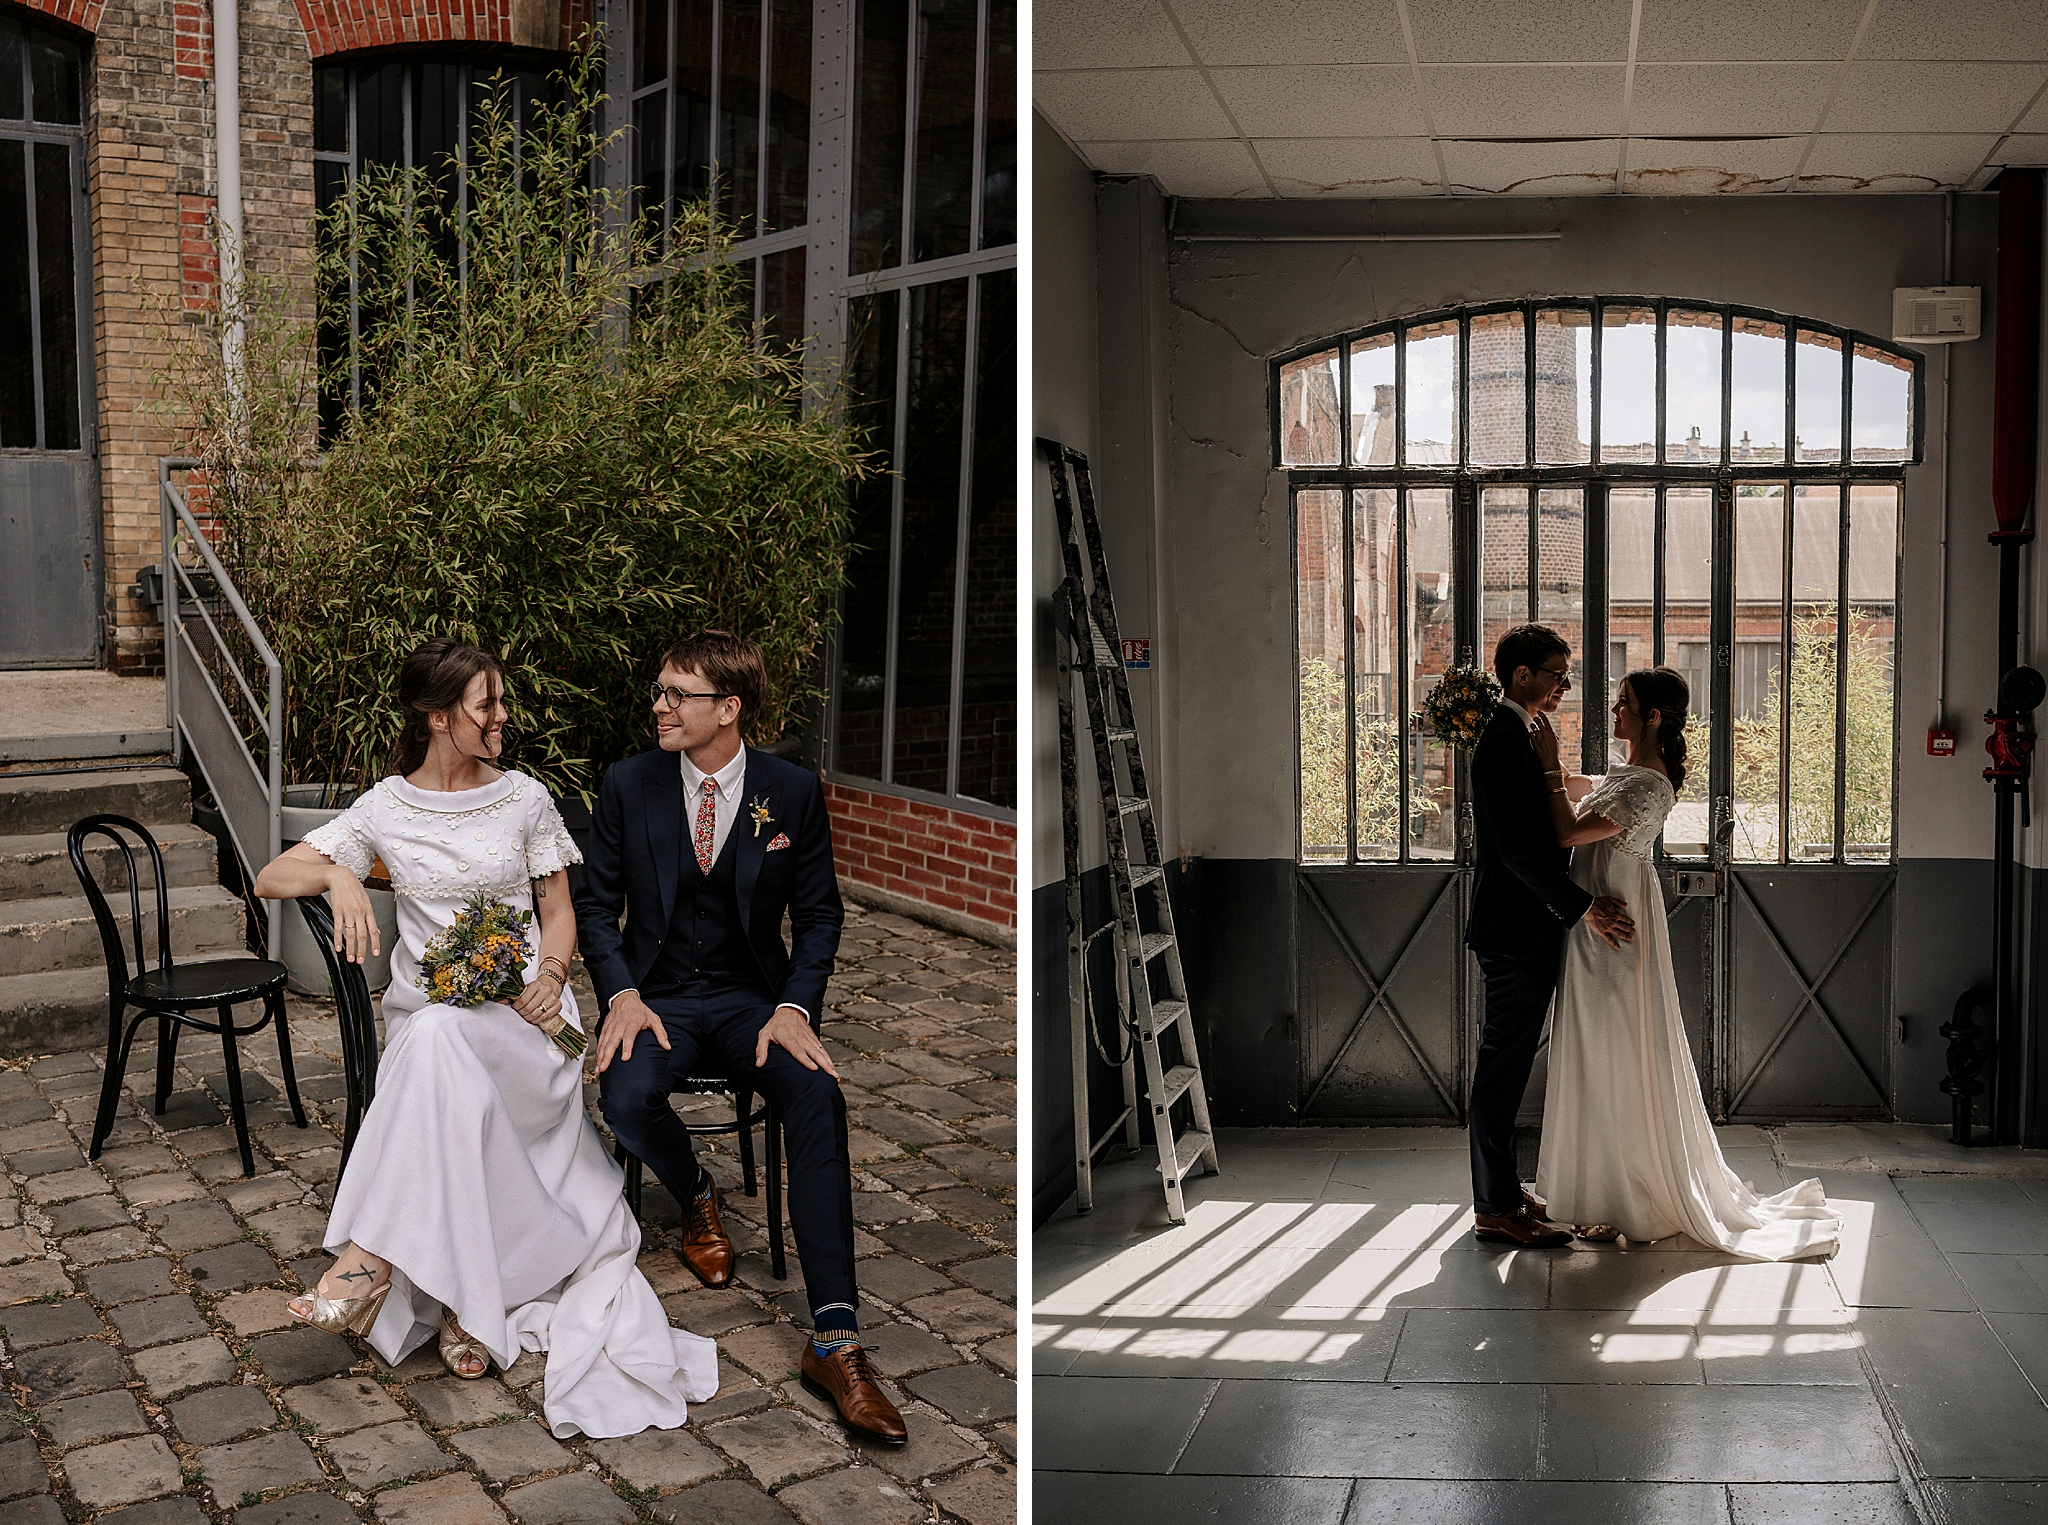 clacquesin paris wedding hochzeit marriage fotograf photographer civil ceremony mairie asnieres sur seine destination france french american